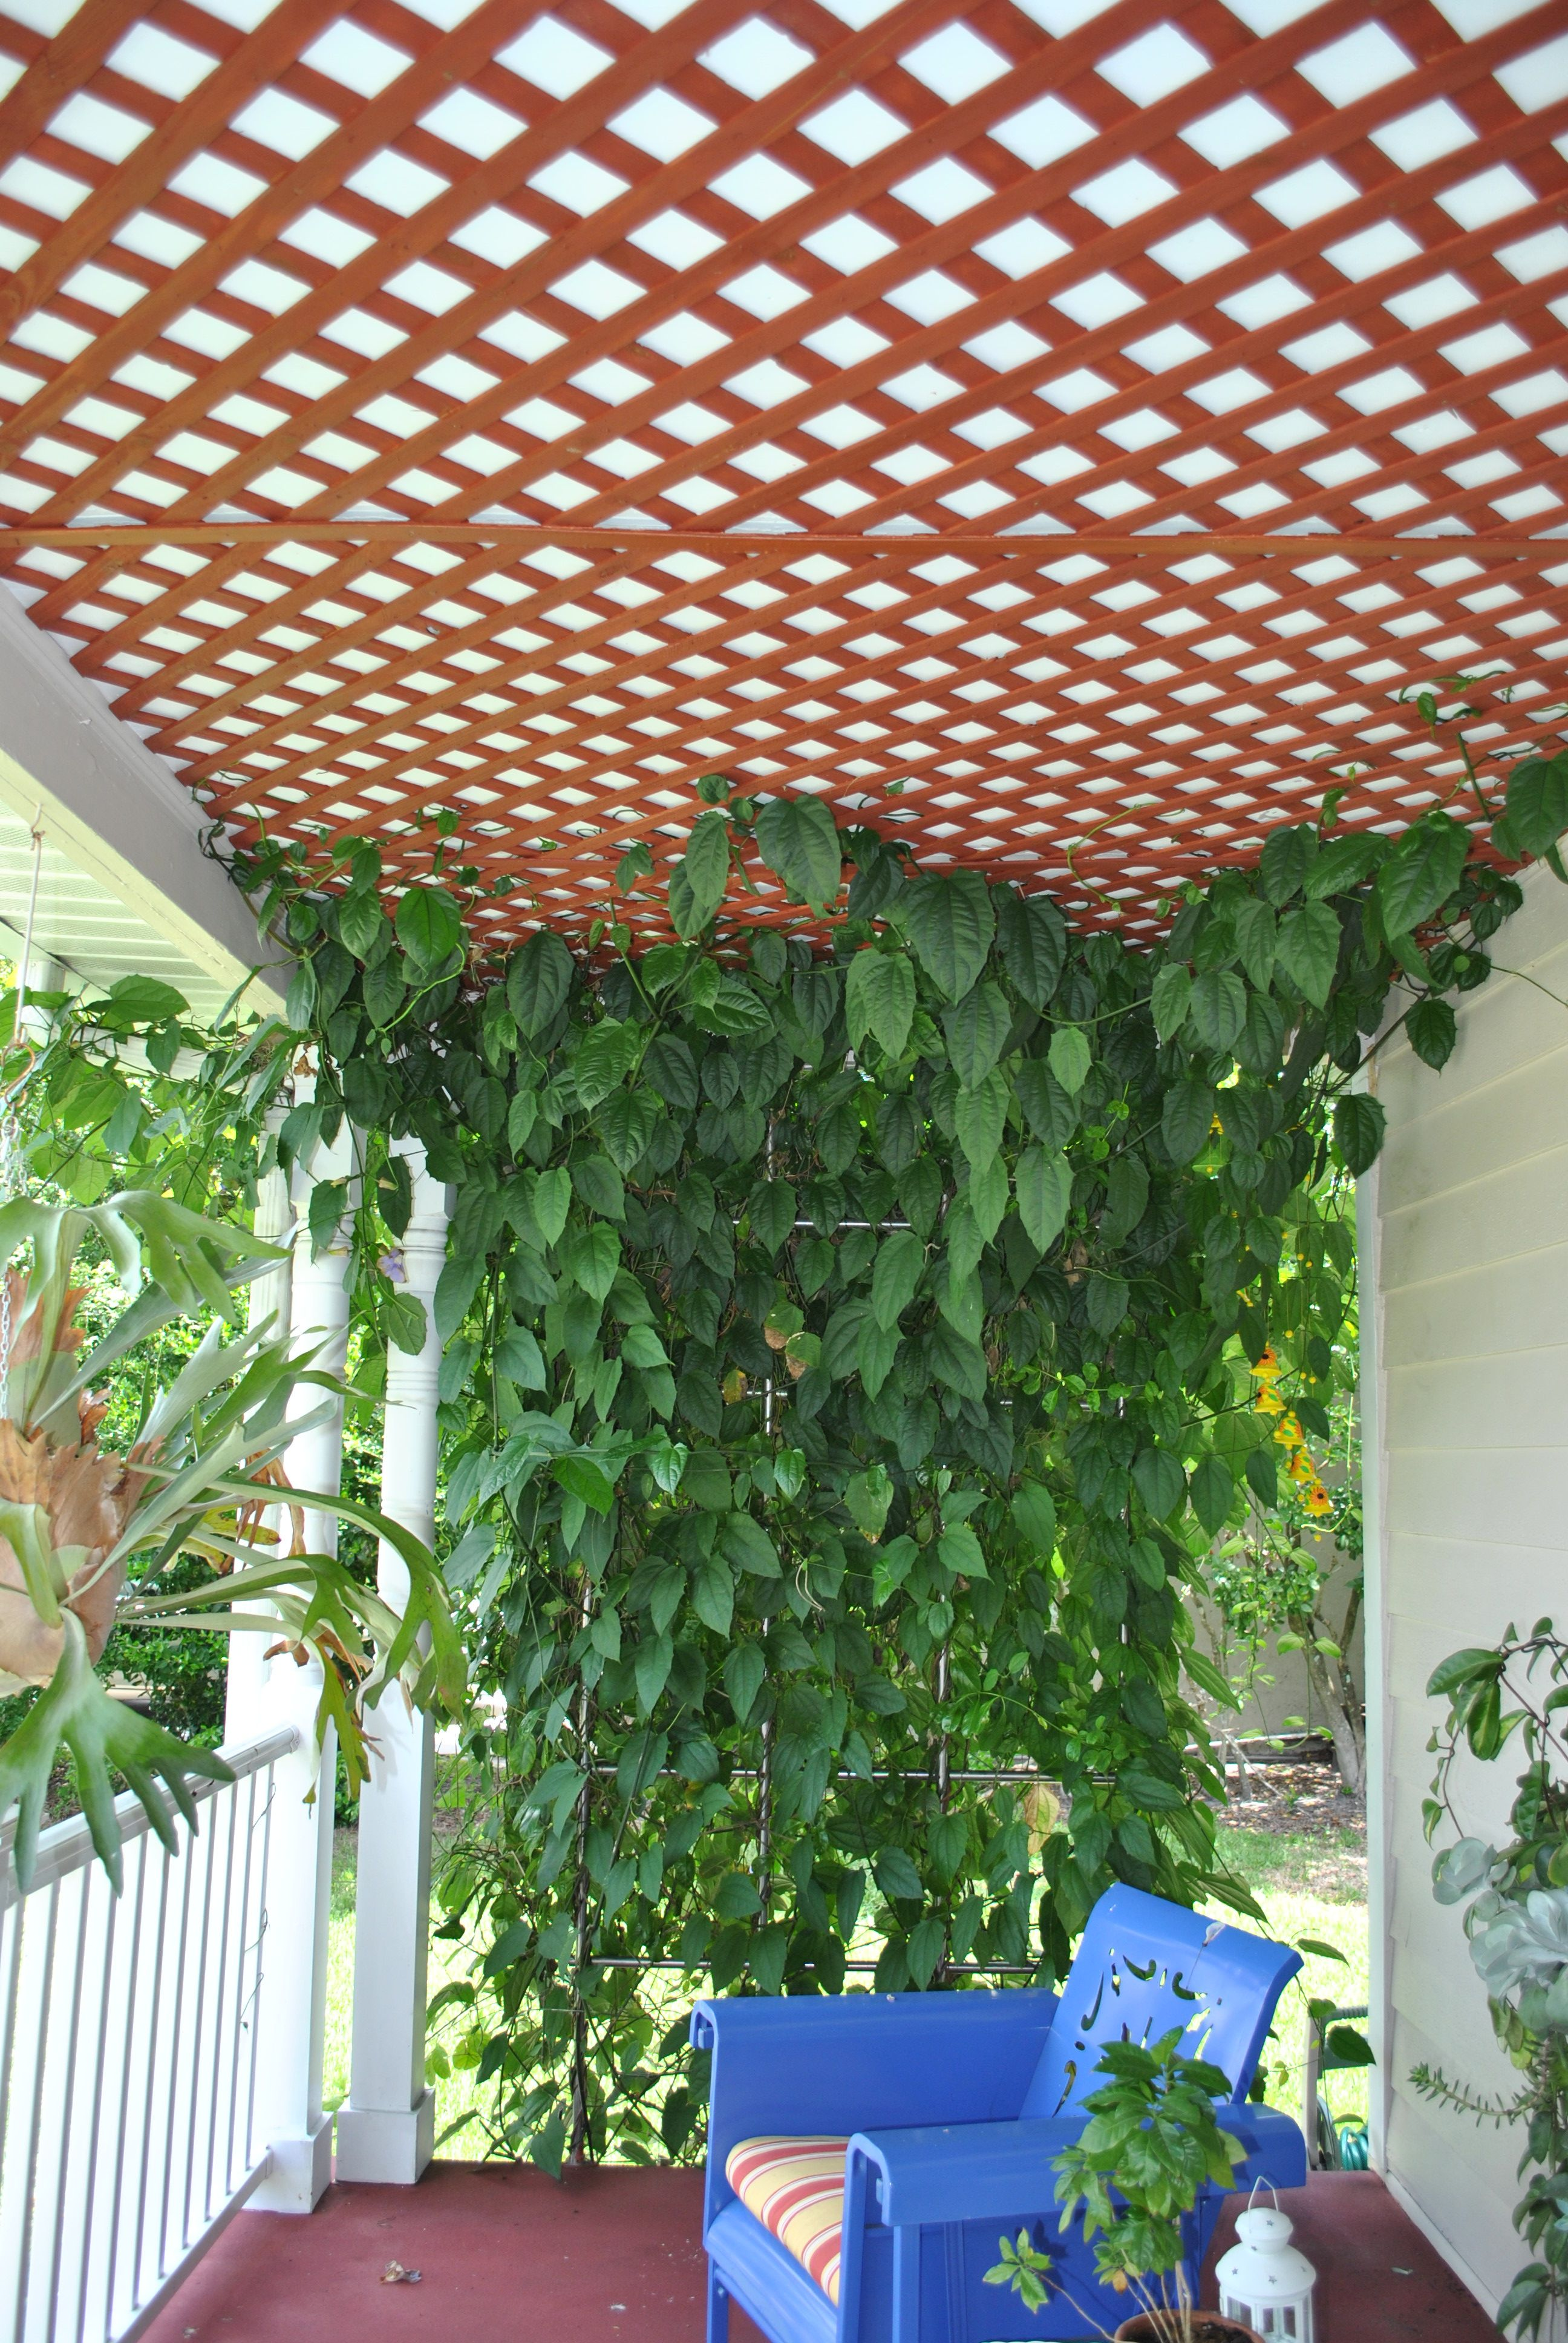 Lattice Work On The Ceiling Of Front Porch Great For